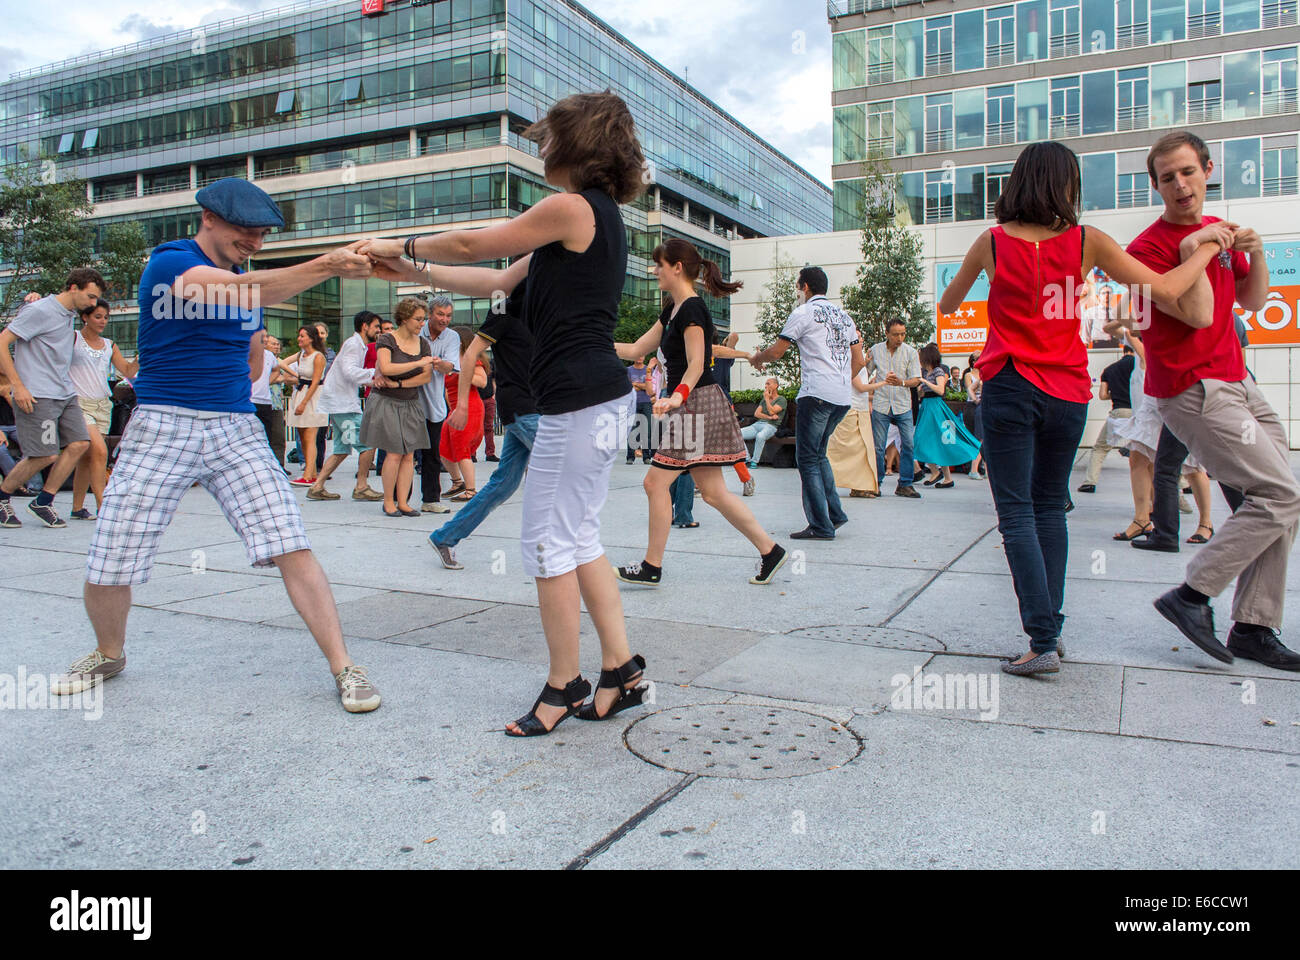 Paris, France, Tourists enjoying Public Events, 'Rock n Roll' Street Dancing, Bibliotheque Area, adult extracurricular - Stock Image